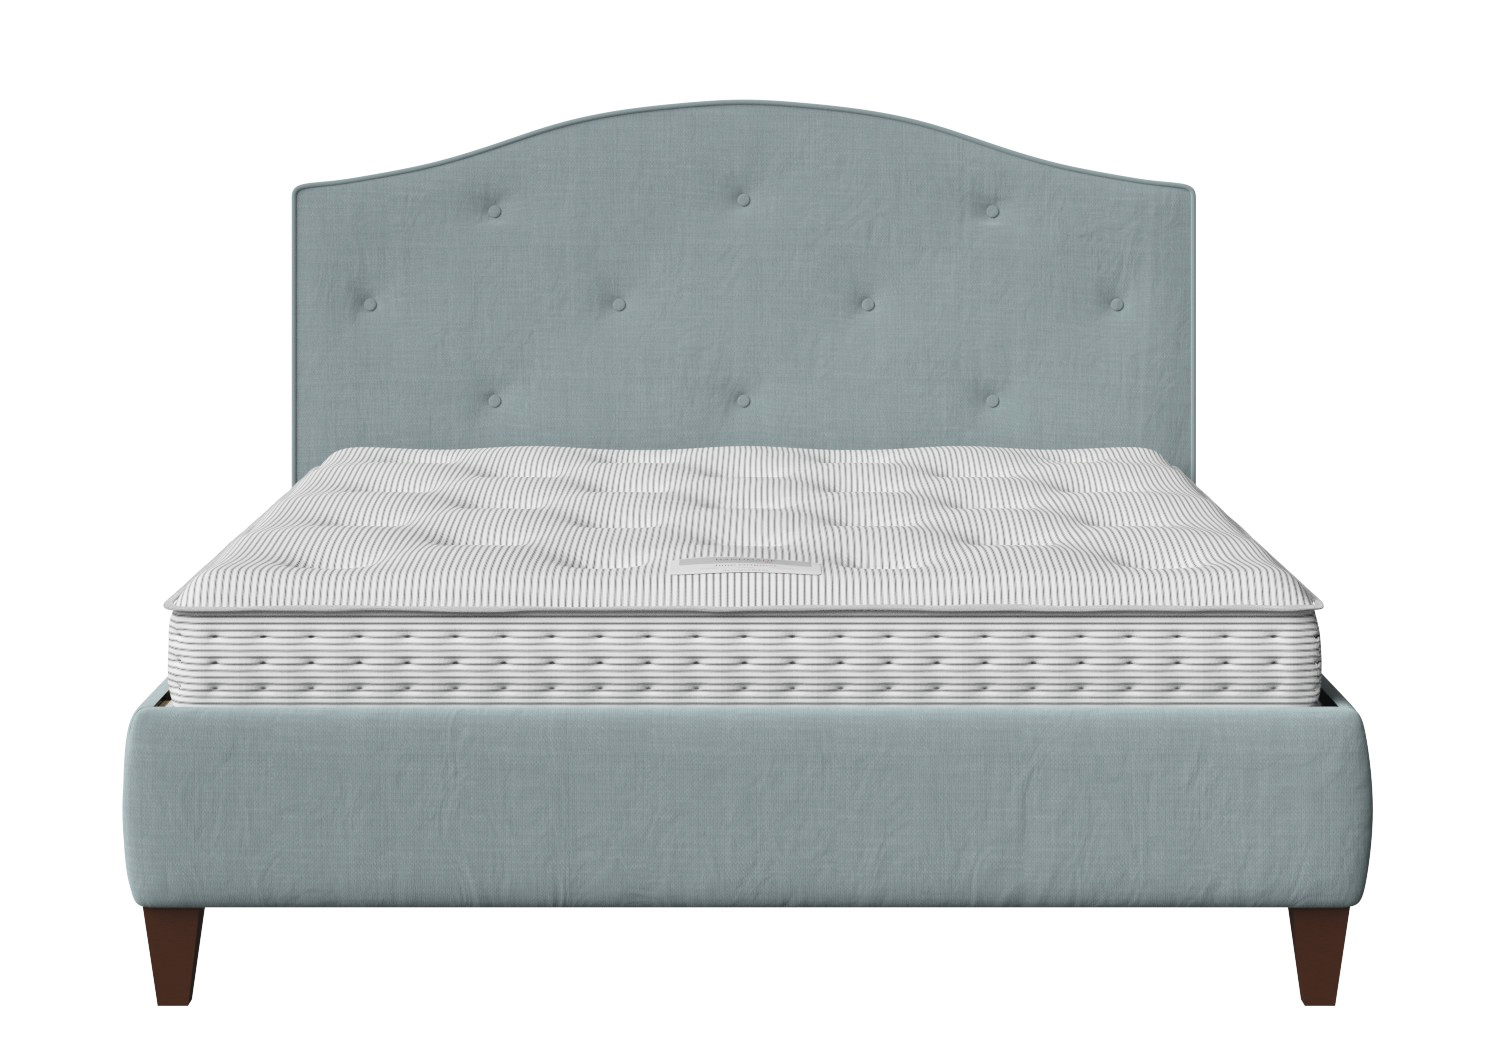 Daniella Upholstered bed in Wedgewood fabric with buttoning shown with Juno 1 mattress